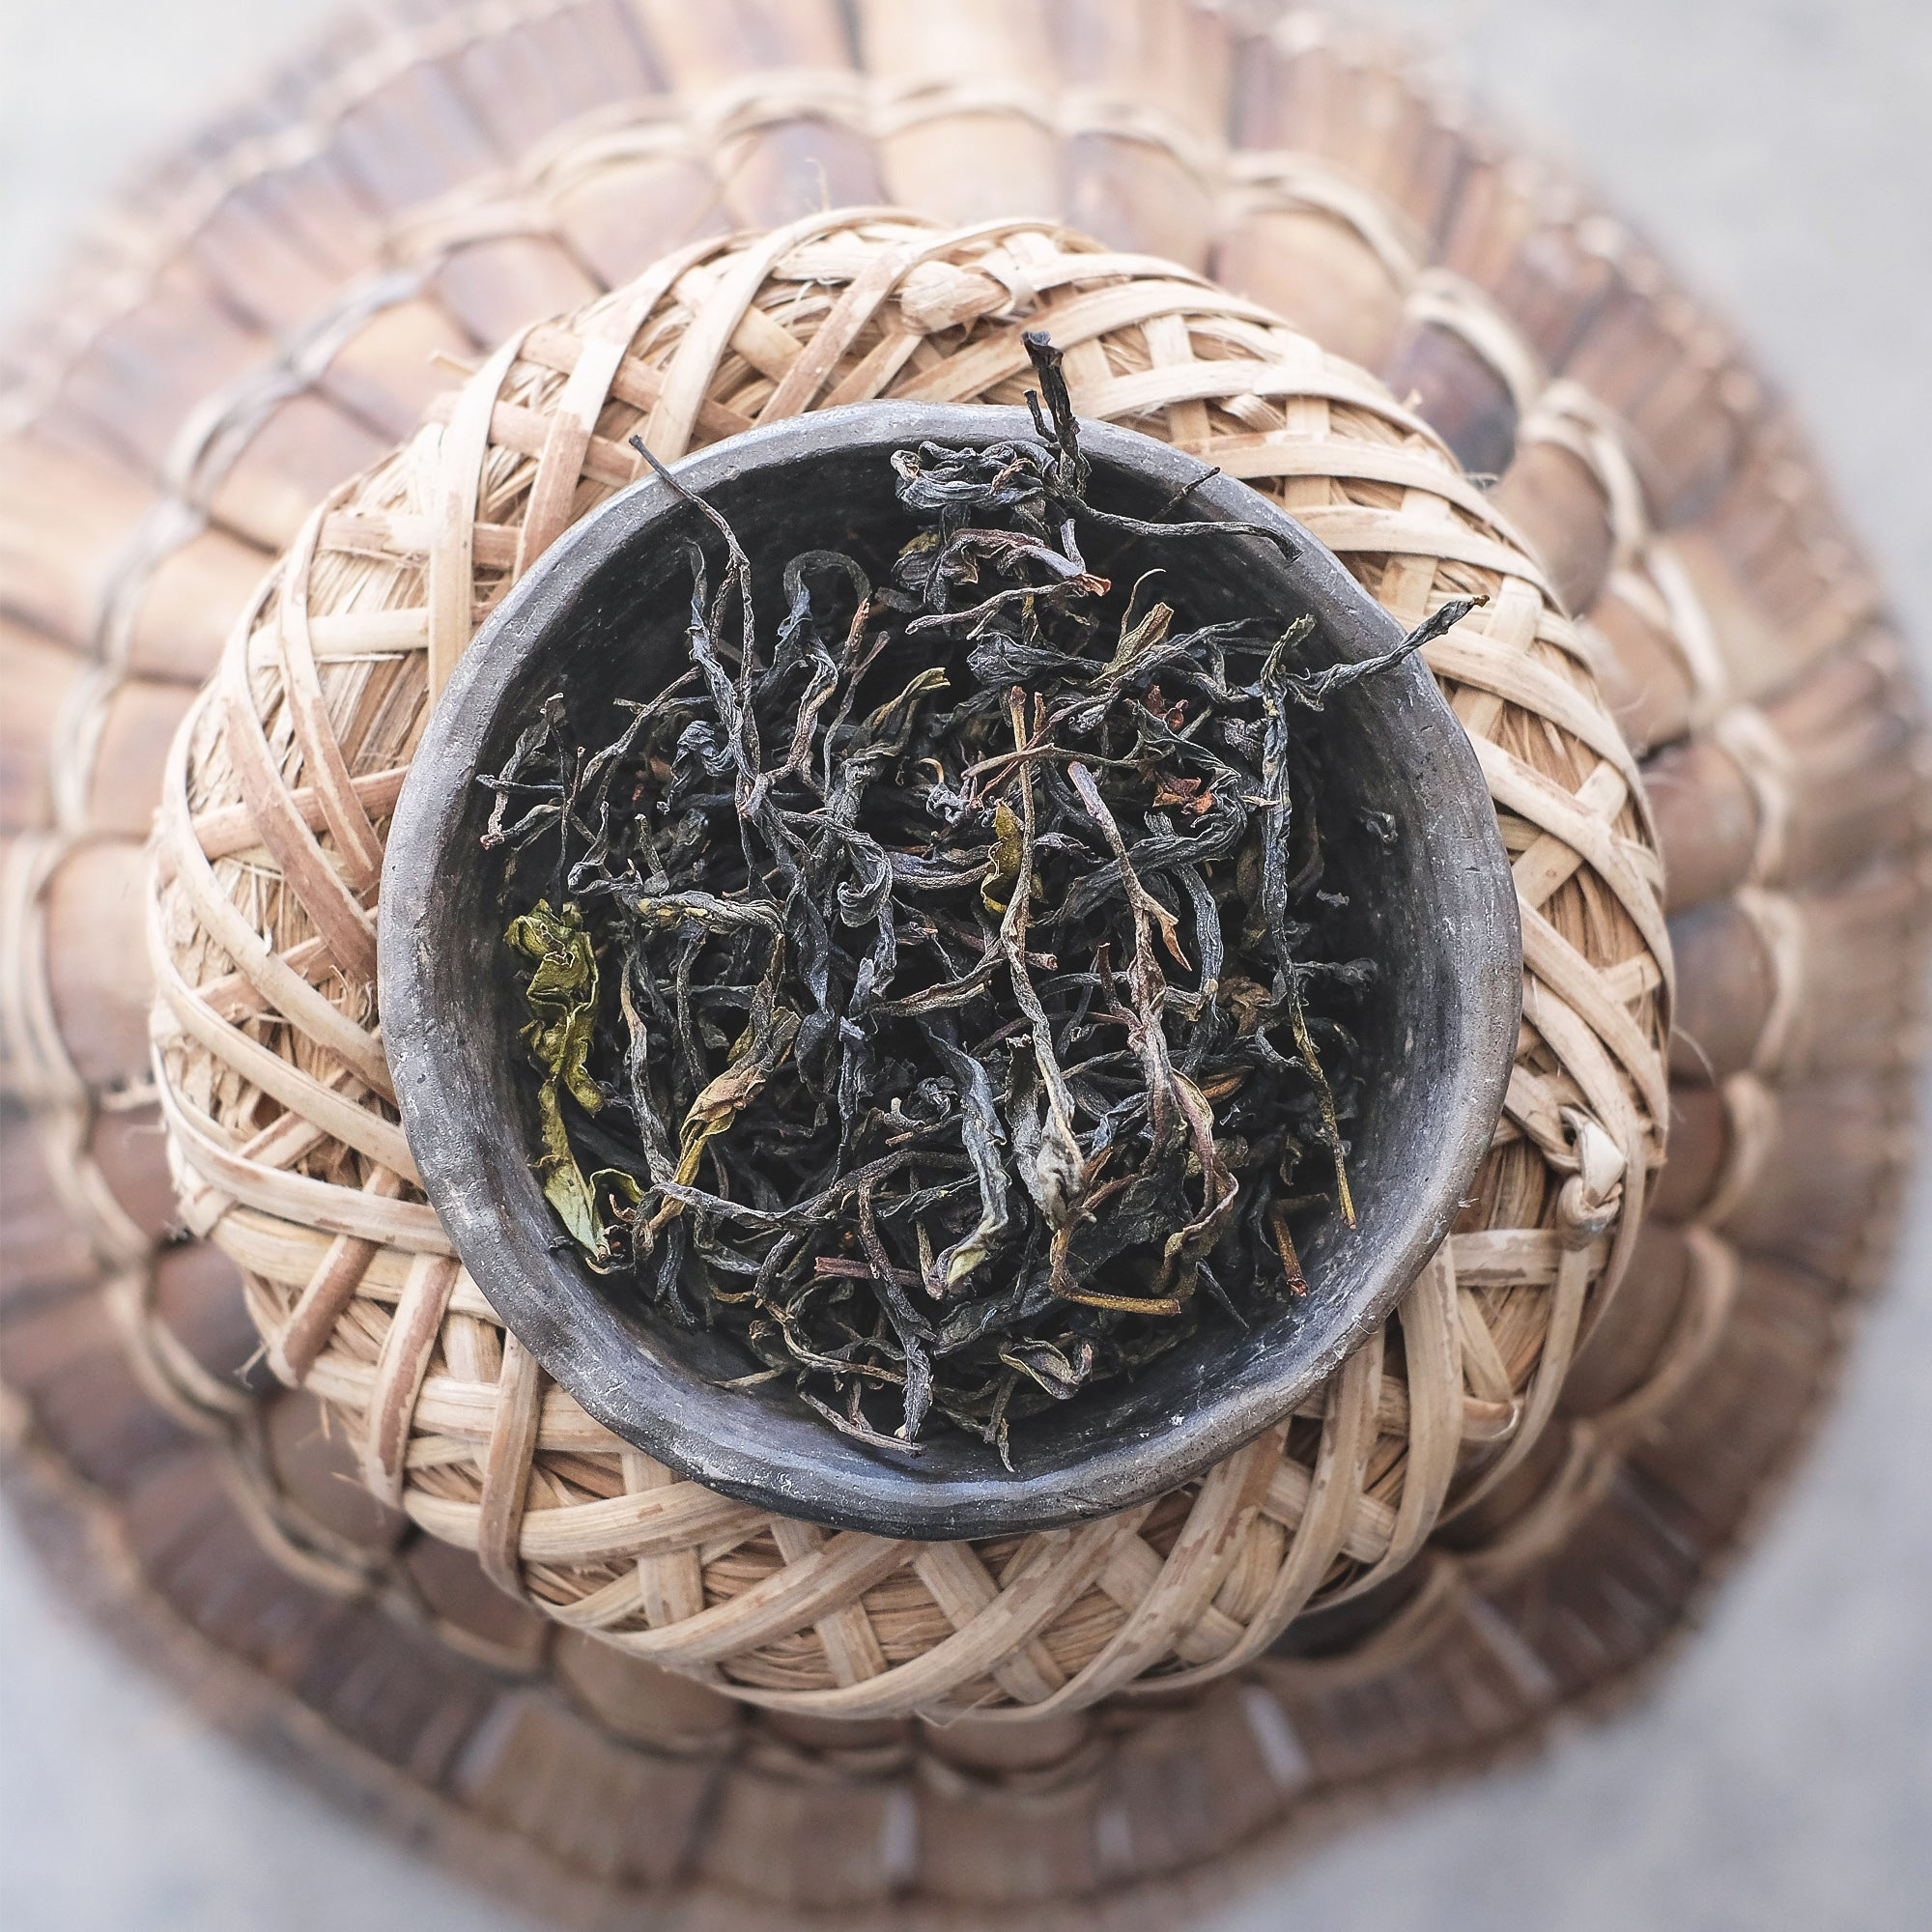 Petrichor - Autumn batch oolong